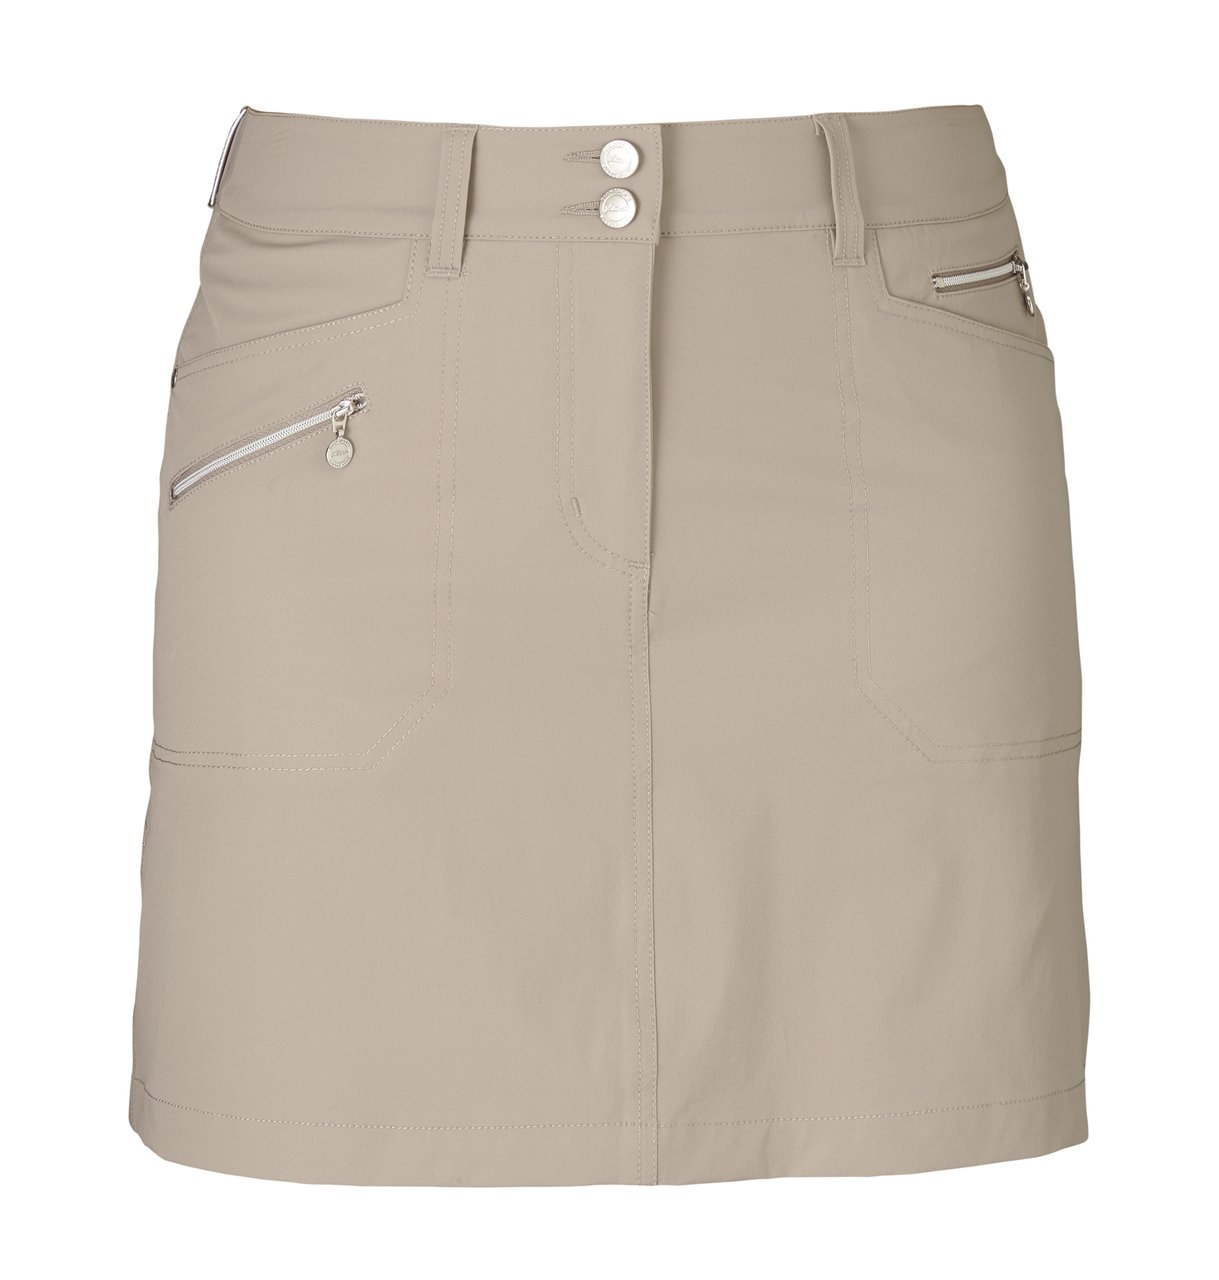 Daily Sports - Womens Miracle Skort Potato - Size 6